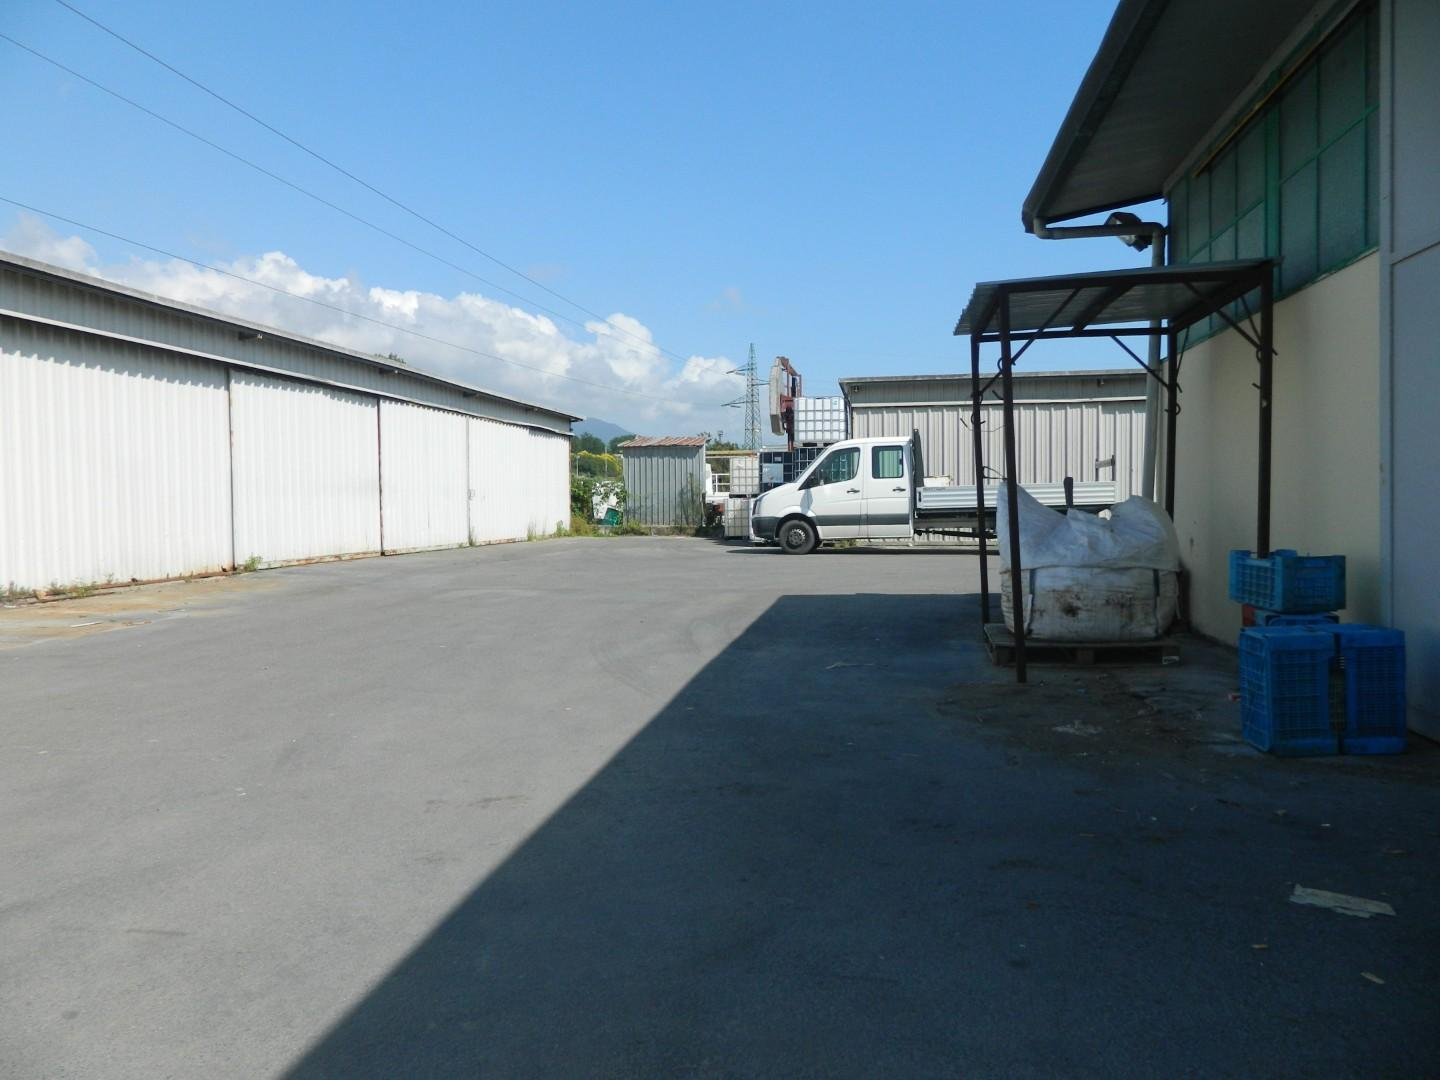 Capannone industriale in affitto commerciale, rif. 106671